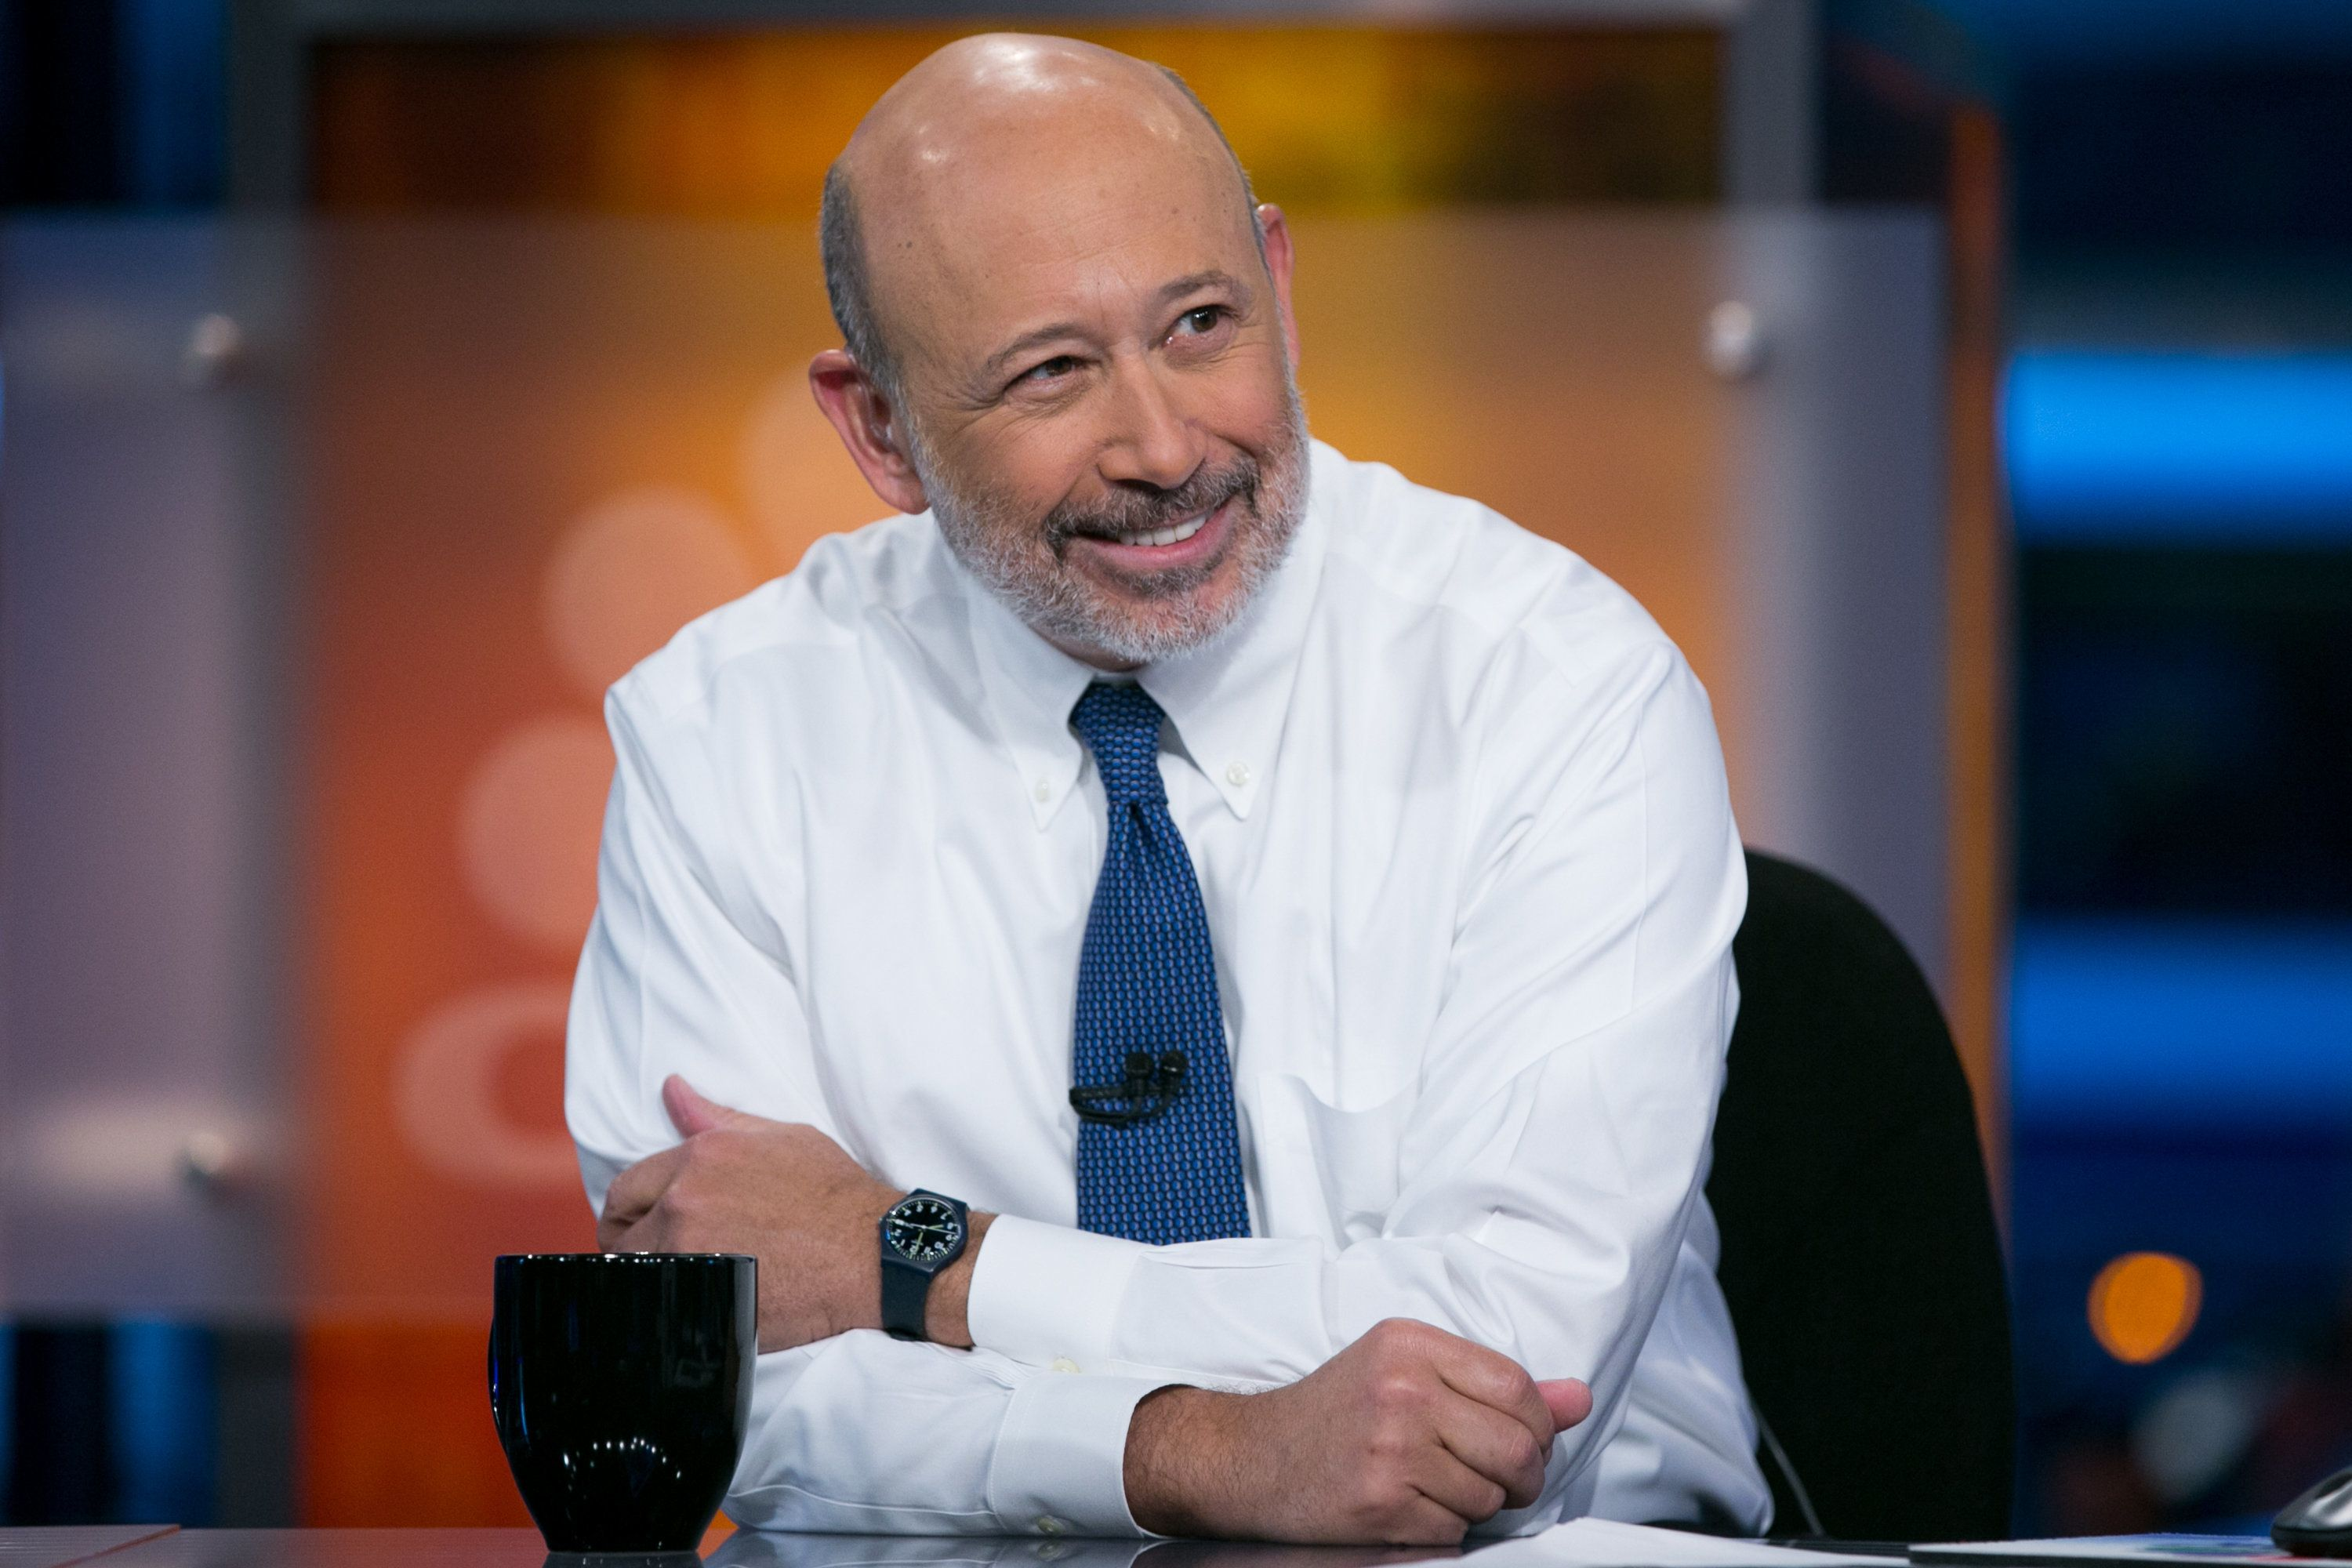 Lloyd Blankfein, CEO and Chairman of Goldman Sachs, on January 7, 2015.